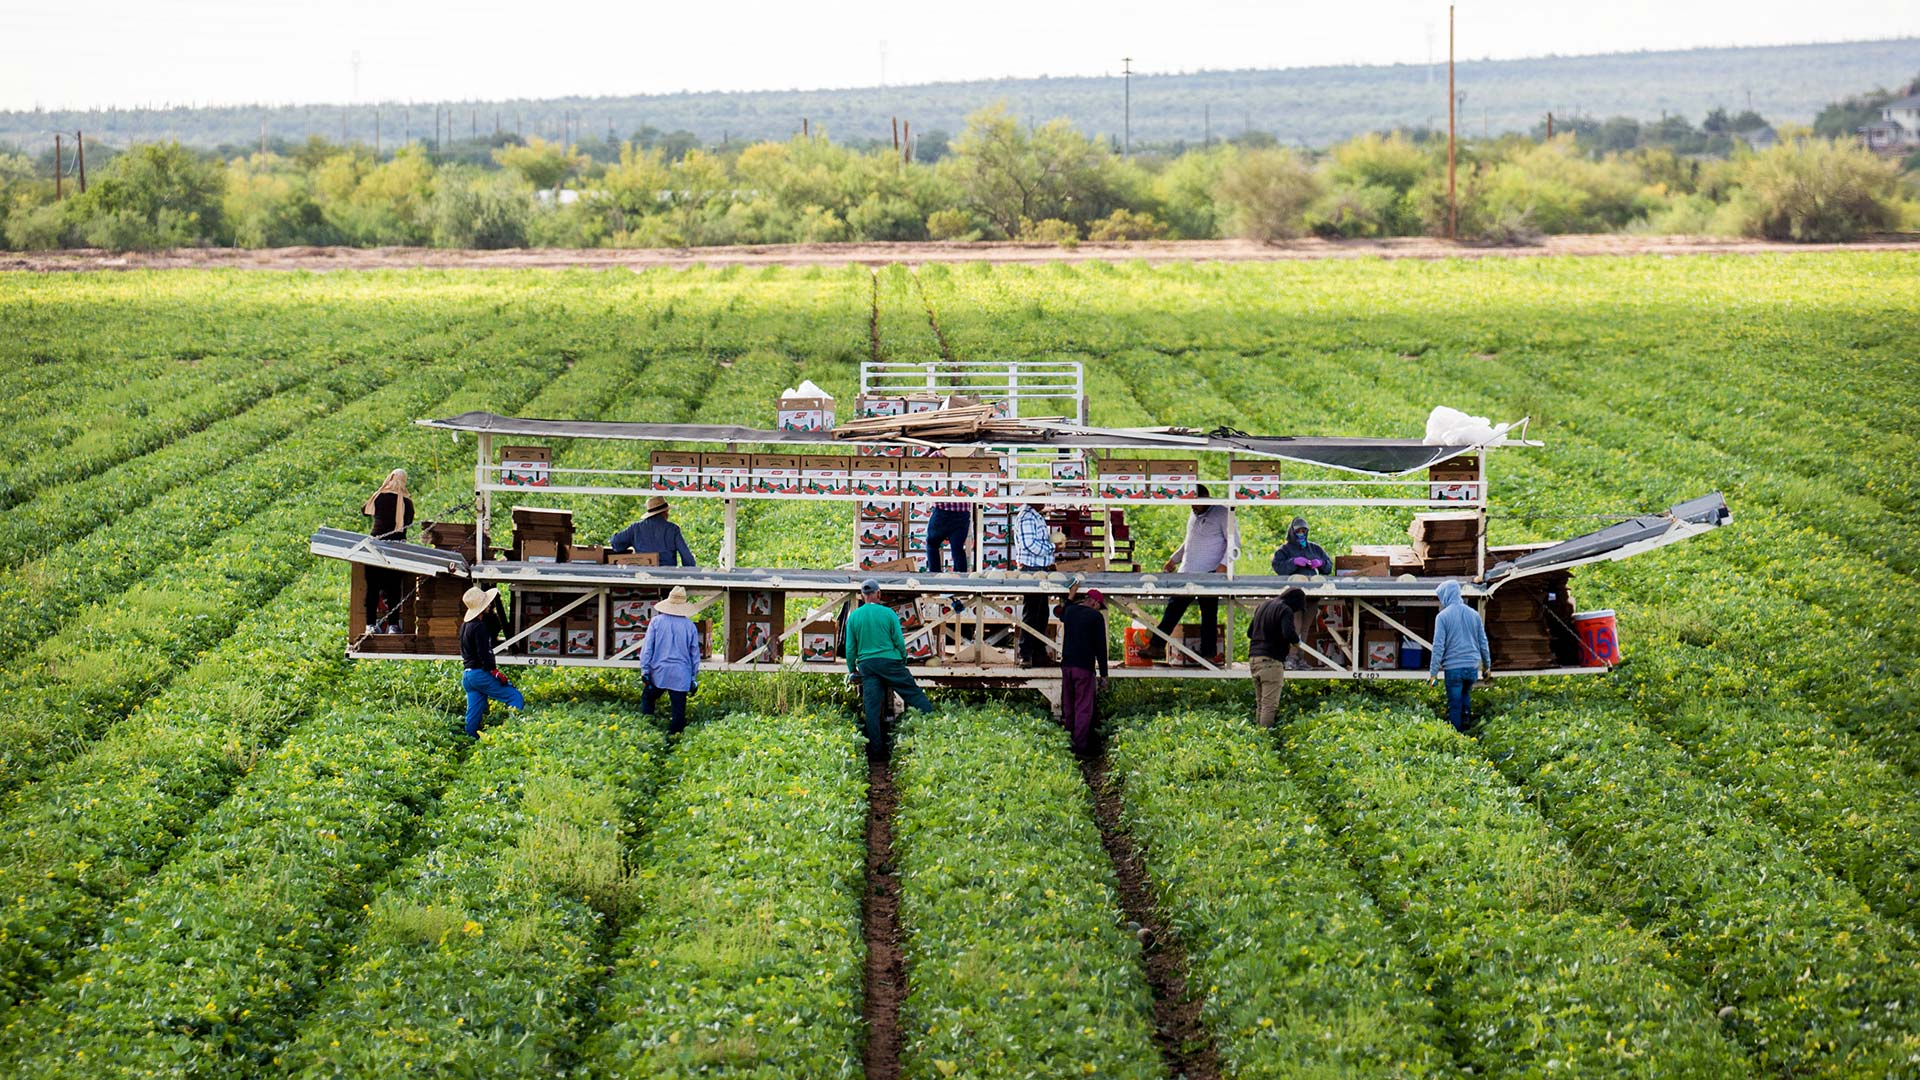 Field workers harvest cantaloupes in a field irrigated with CAP water on Oct. 23, 2018, in Maricopa, Arizona.